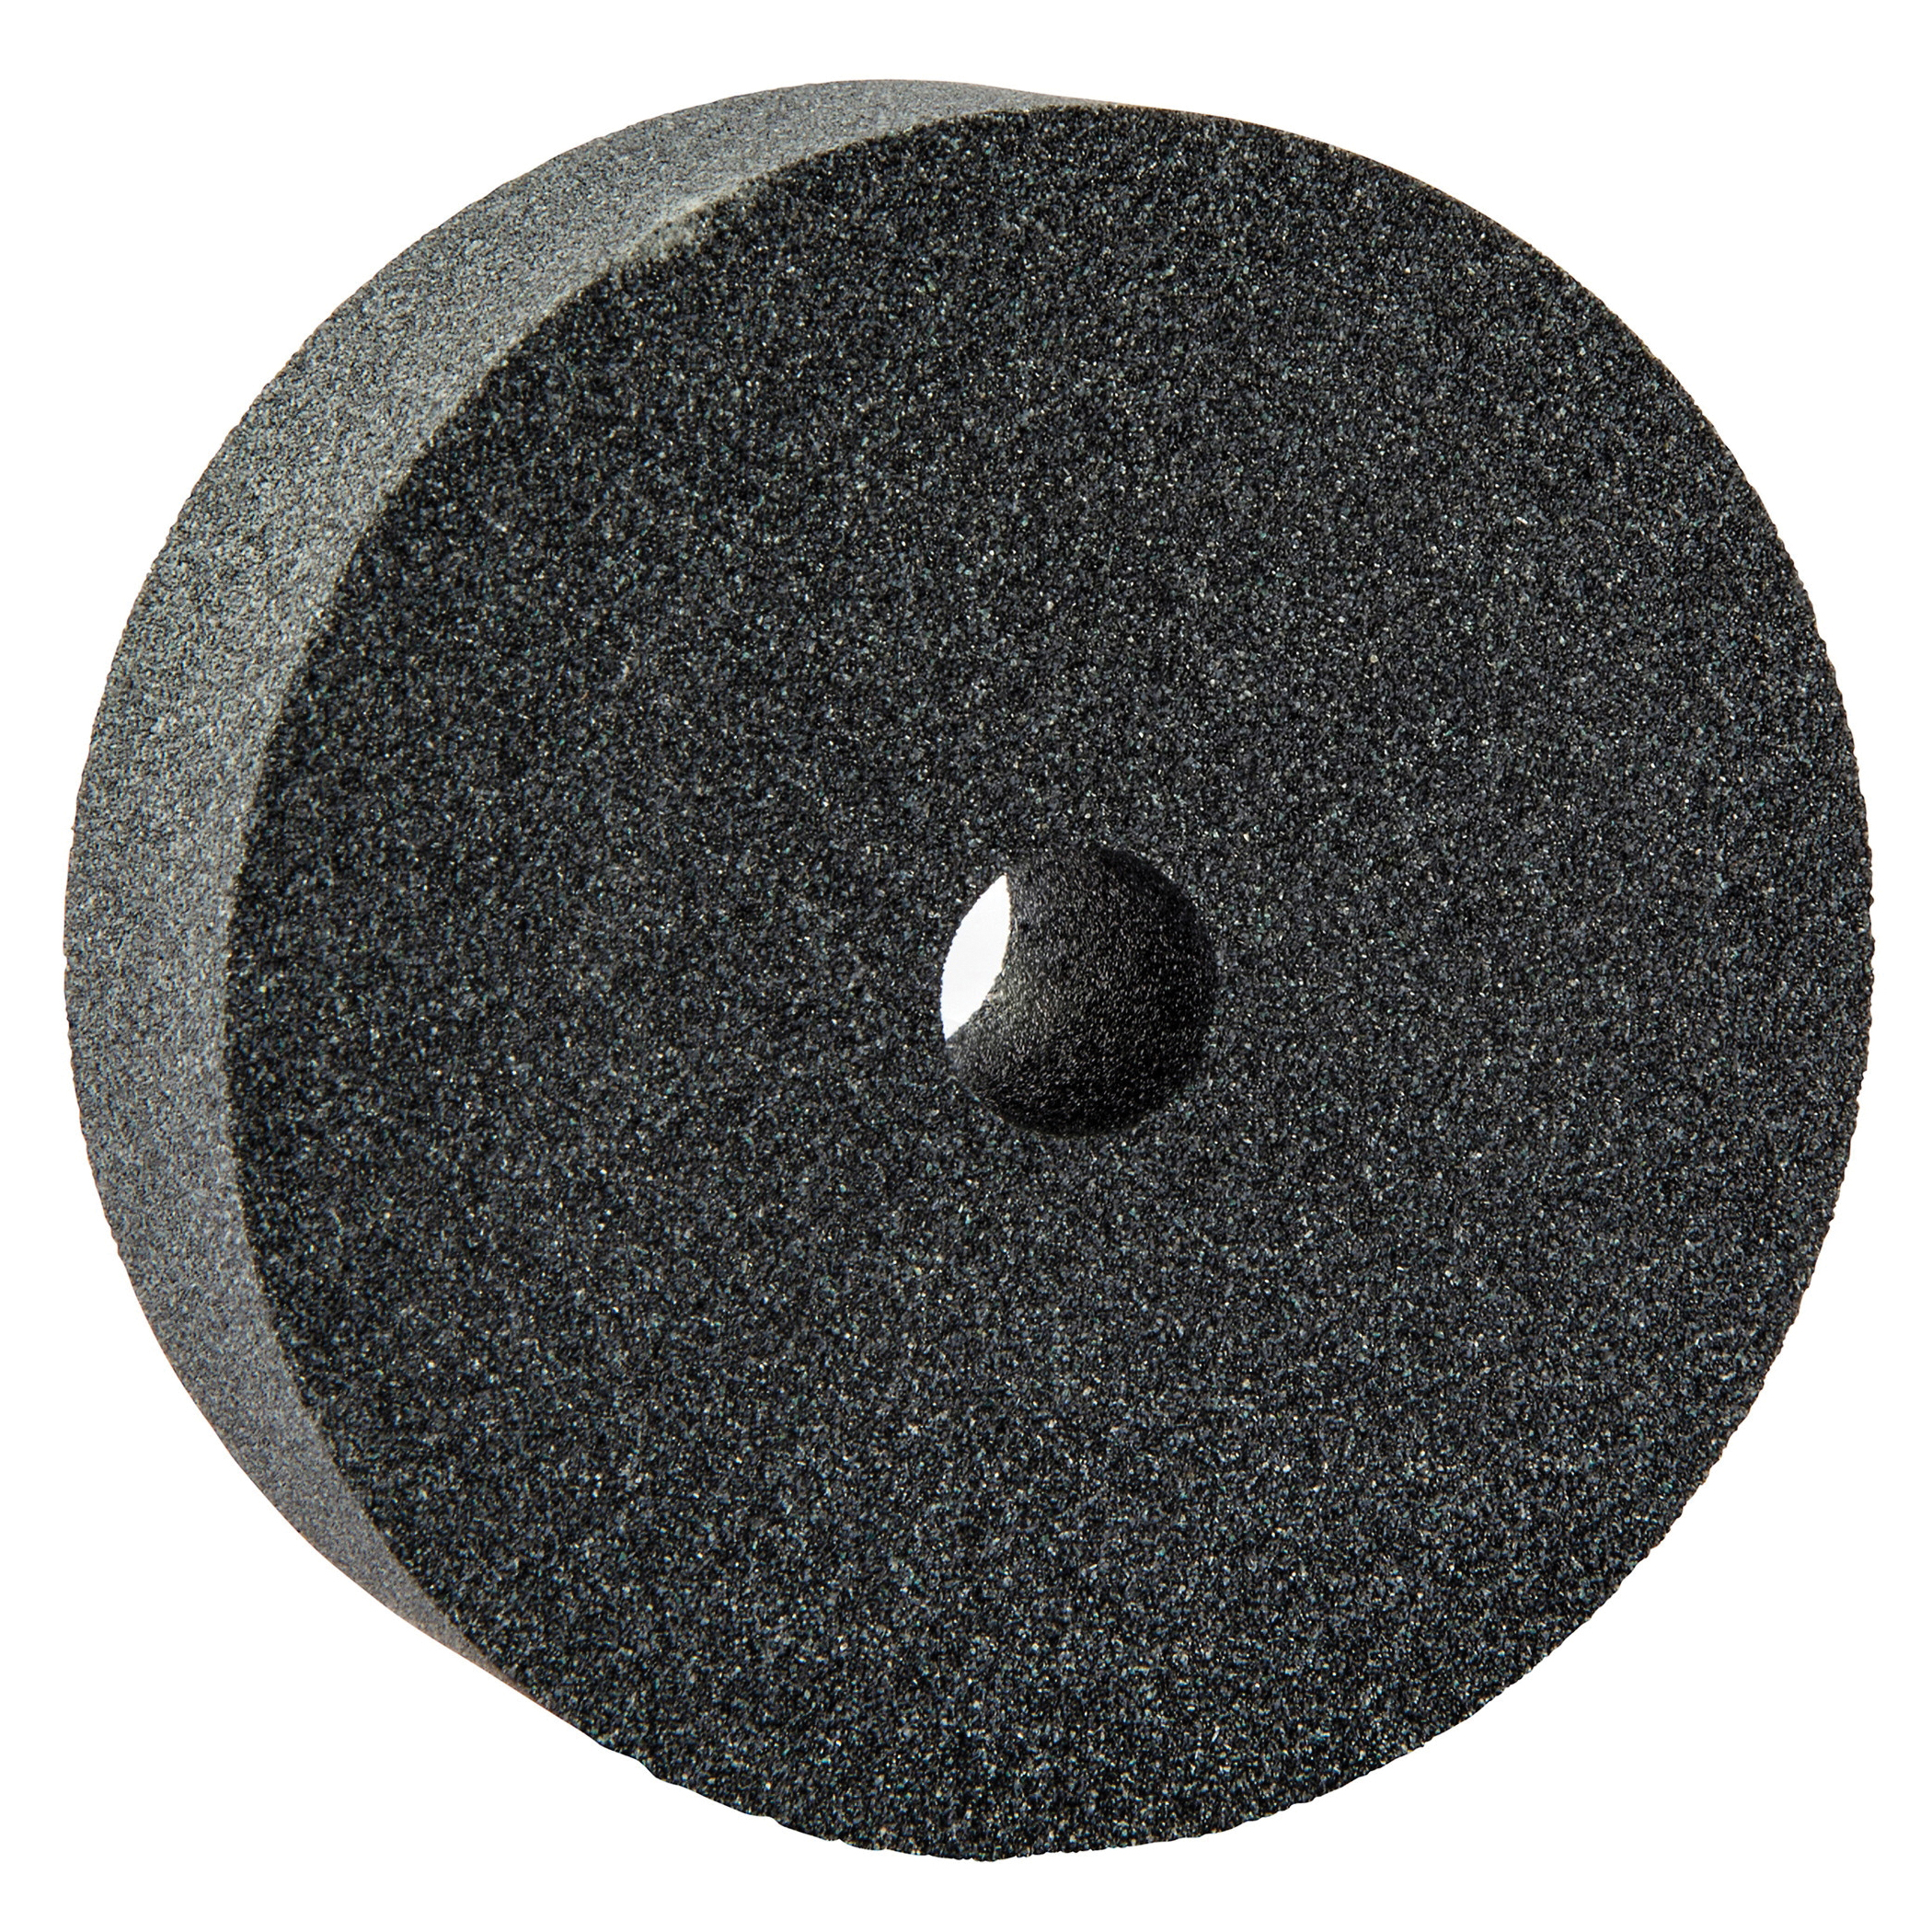 Norton® 66243529171 37C Straight Dressing Wheel, 3 in Dia x 1 in THK, 1/2 in Center Hole, 80 Grit, Silicon Carbide Abrasive